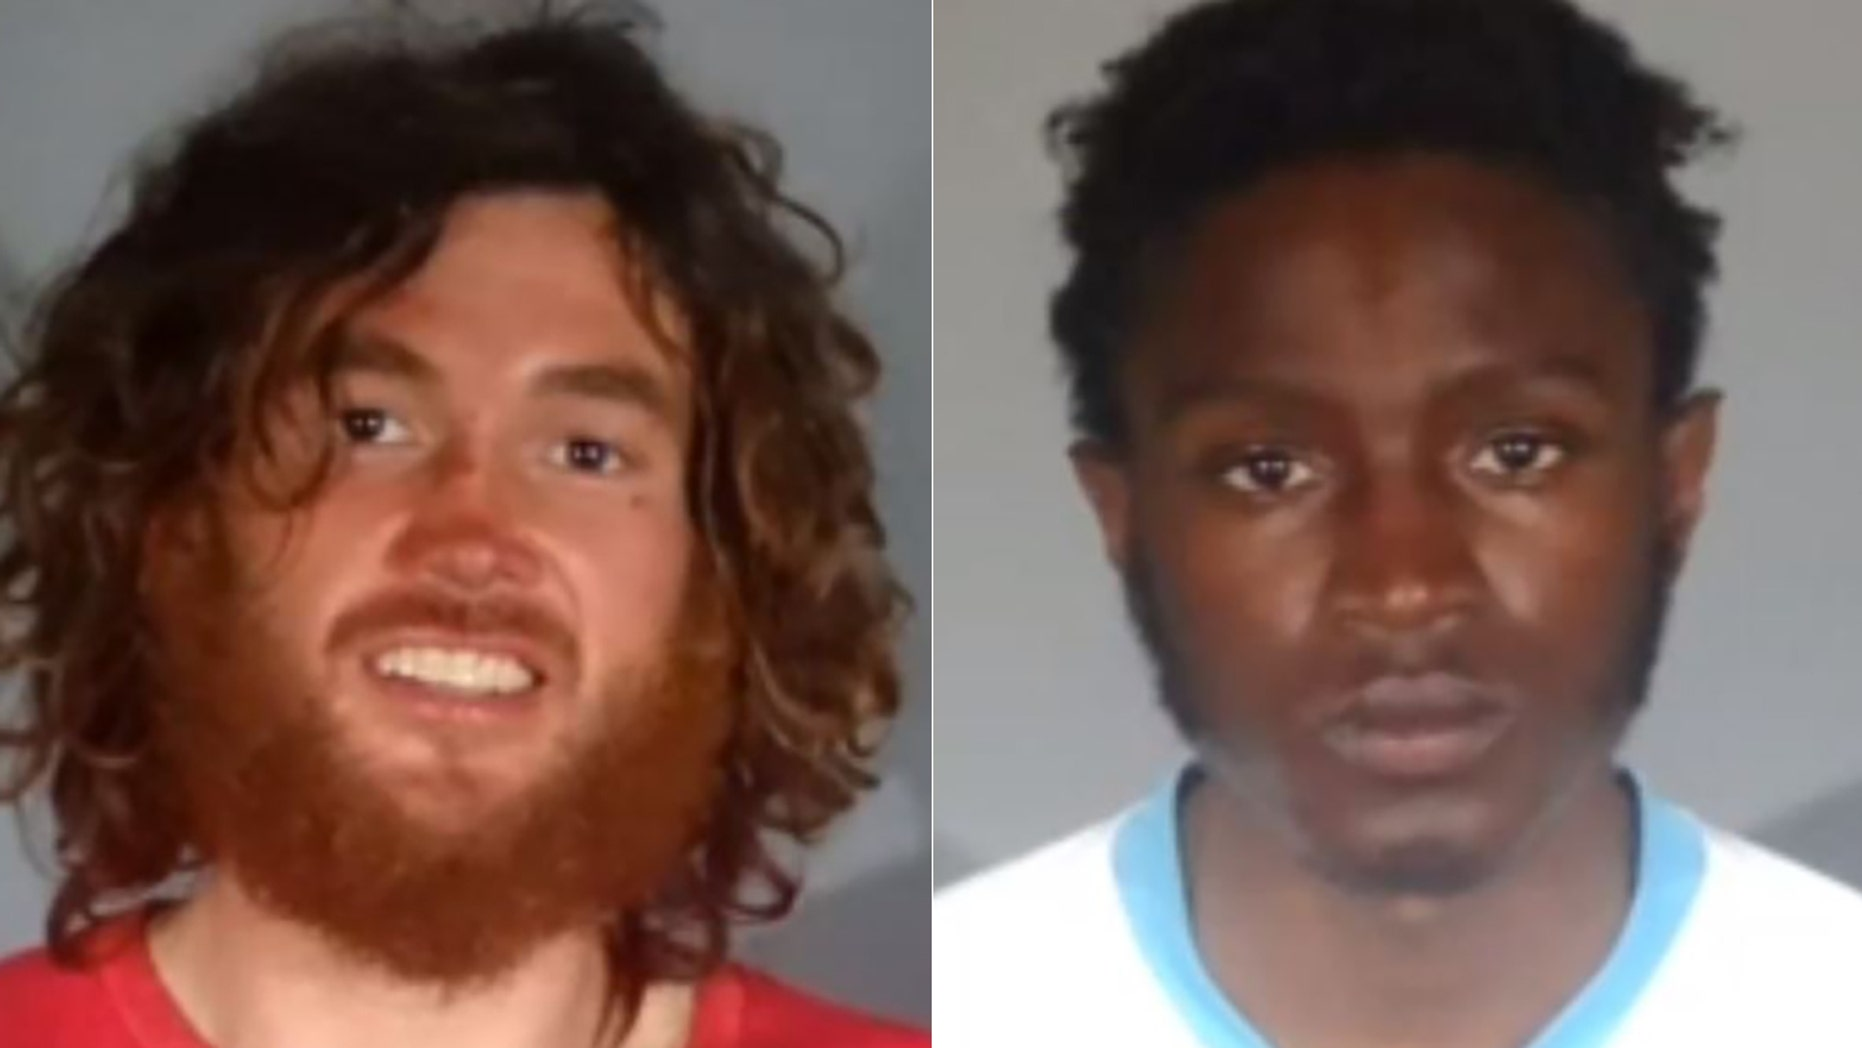 Elijah Smart and Markis White were arrested for allegedly breaking into a Santa Monica, Calif., apartment.